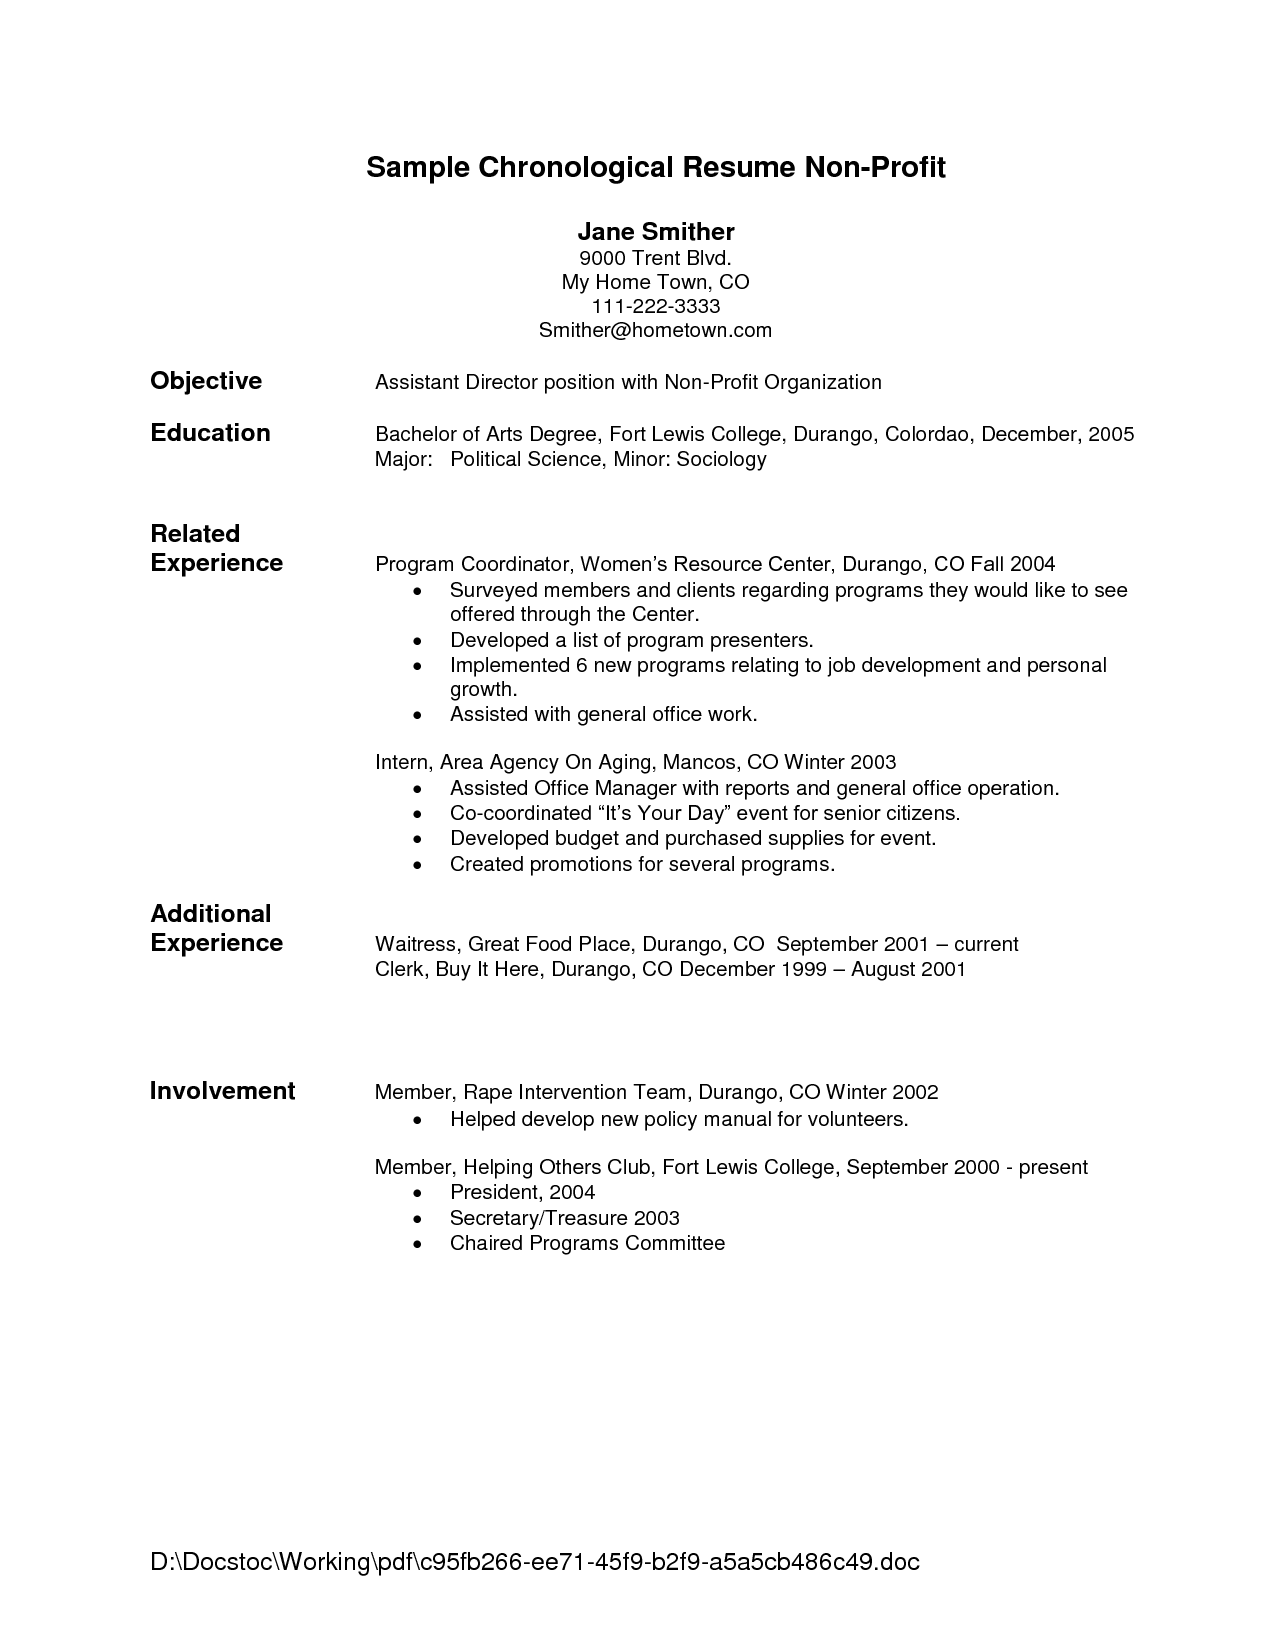 Superior Chronological Resume Template